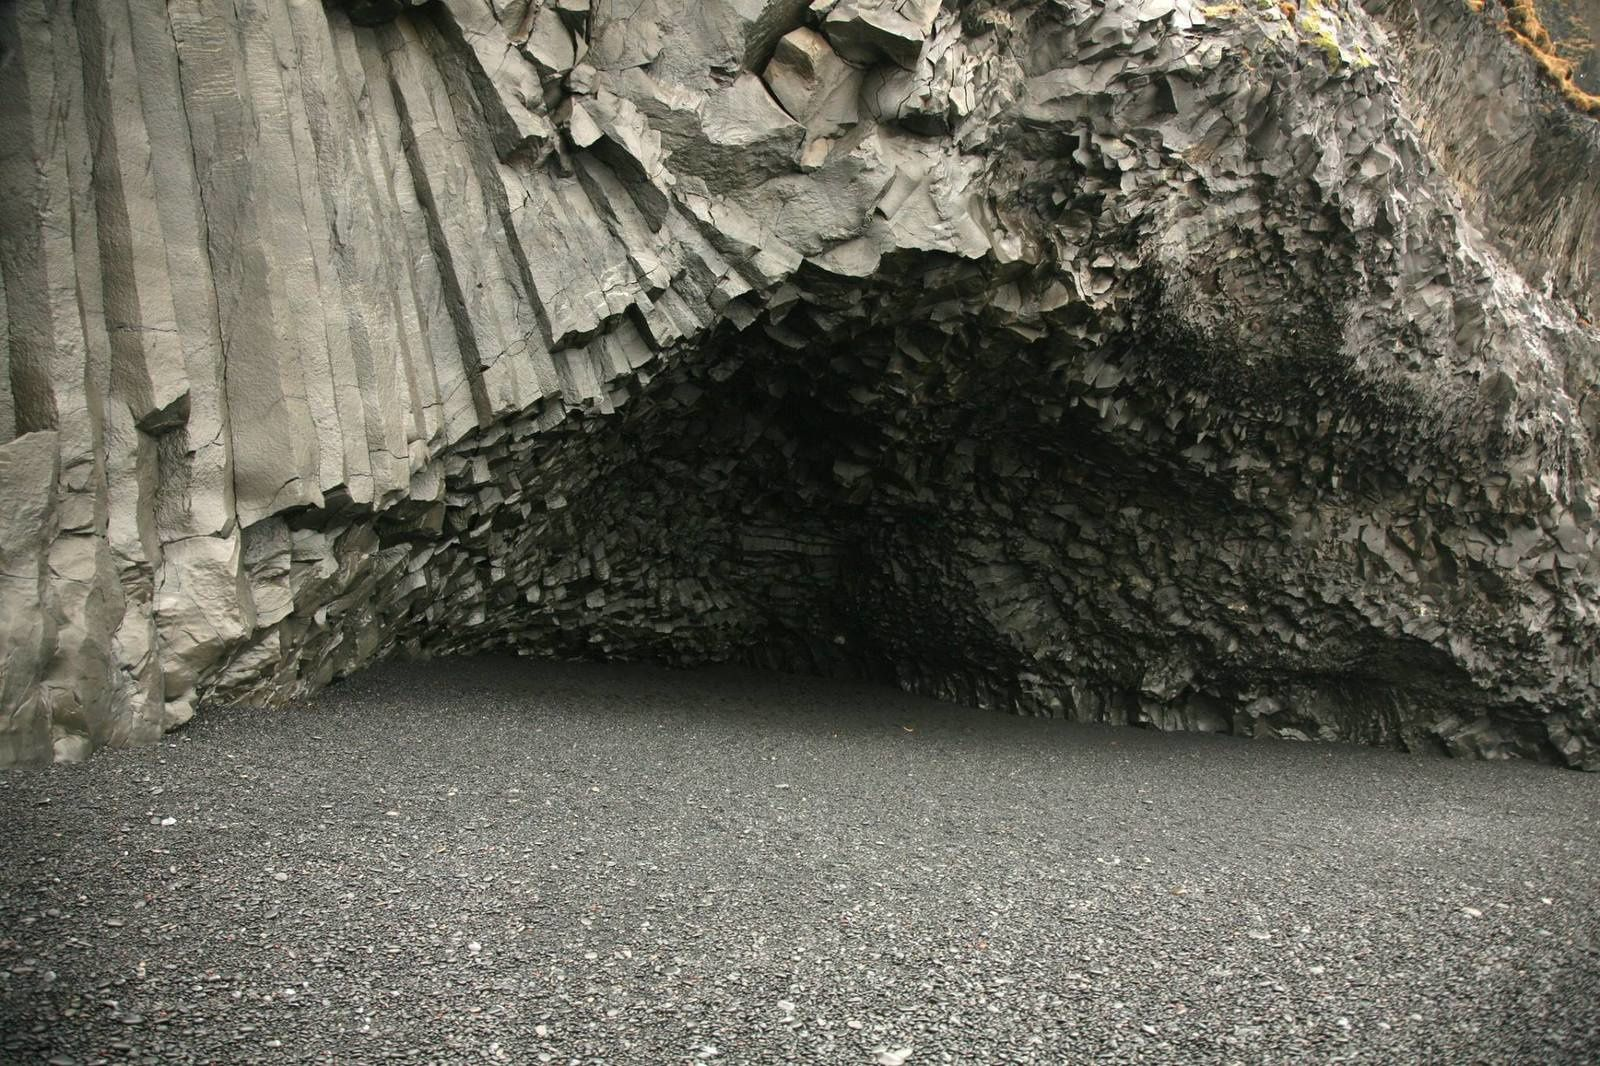 Hálsanefshellir - a cave covered with basalt organs - photo © 2015 Bernard Duyck